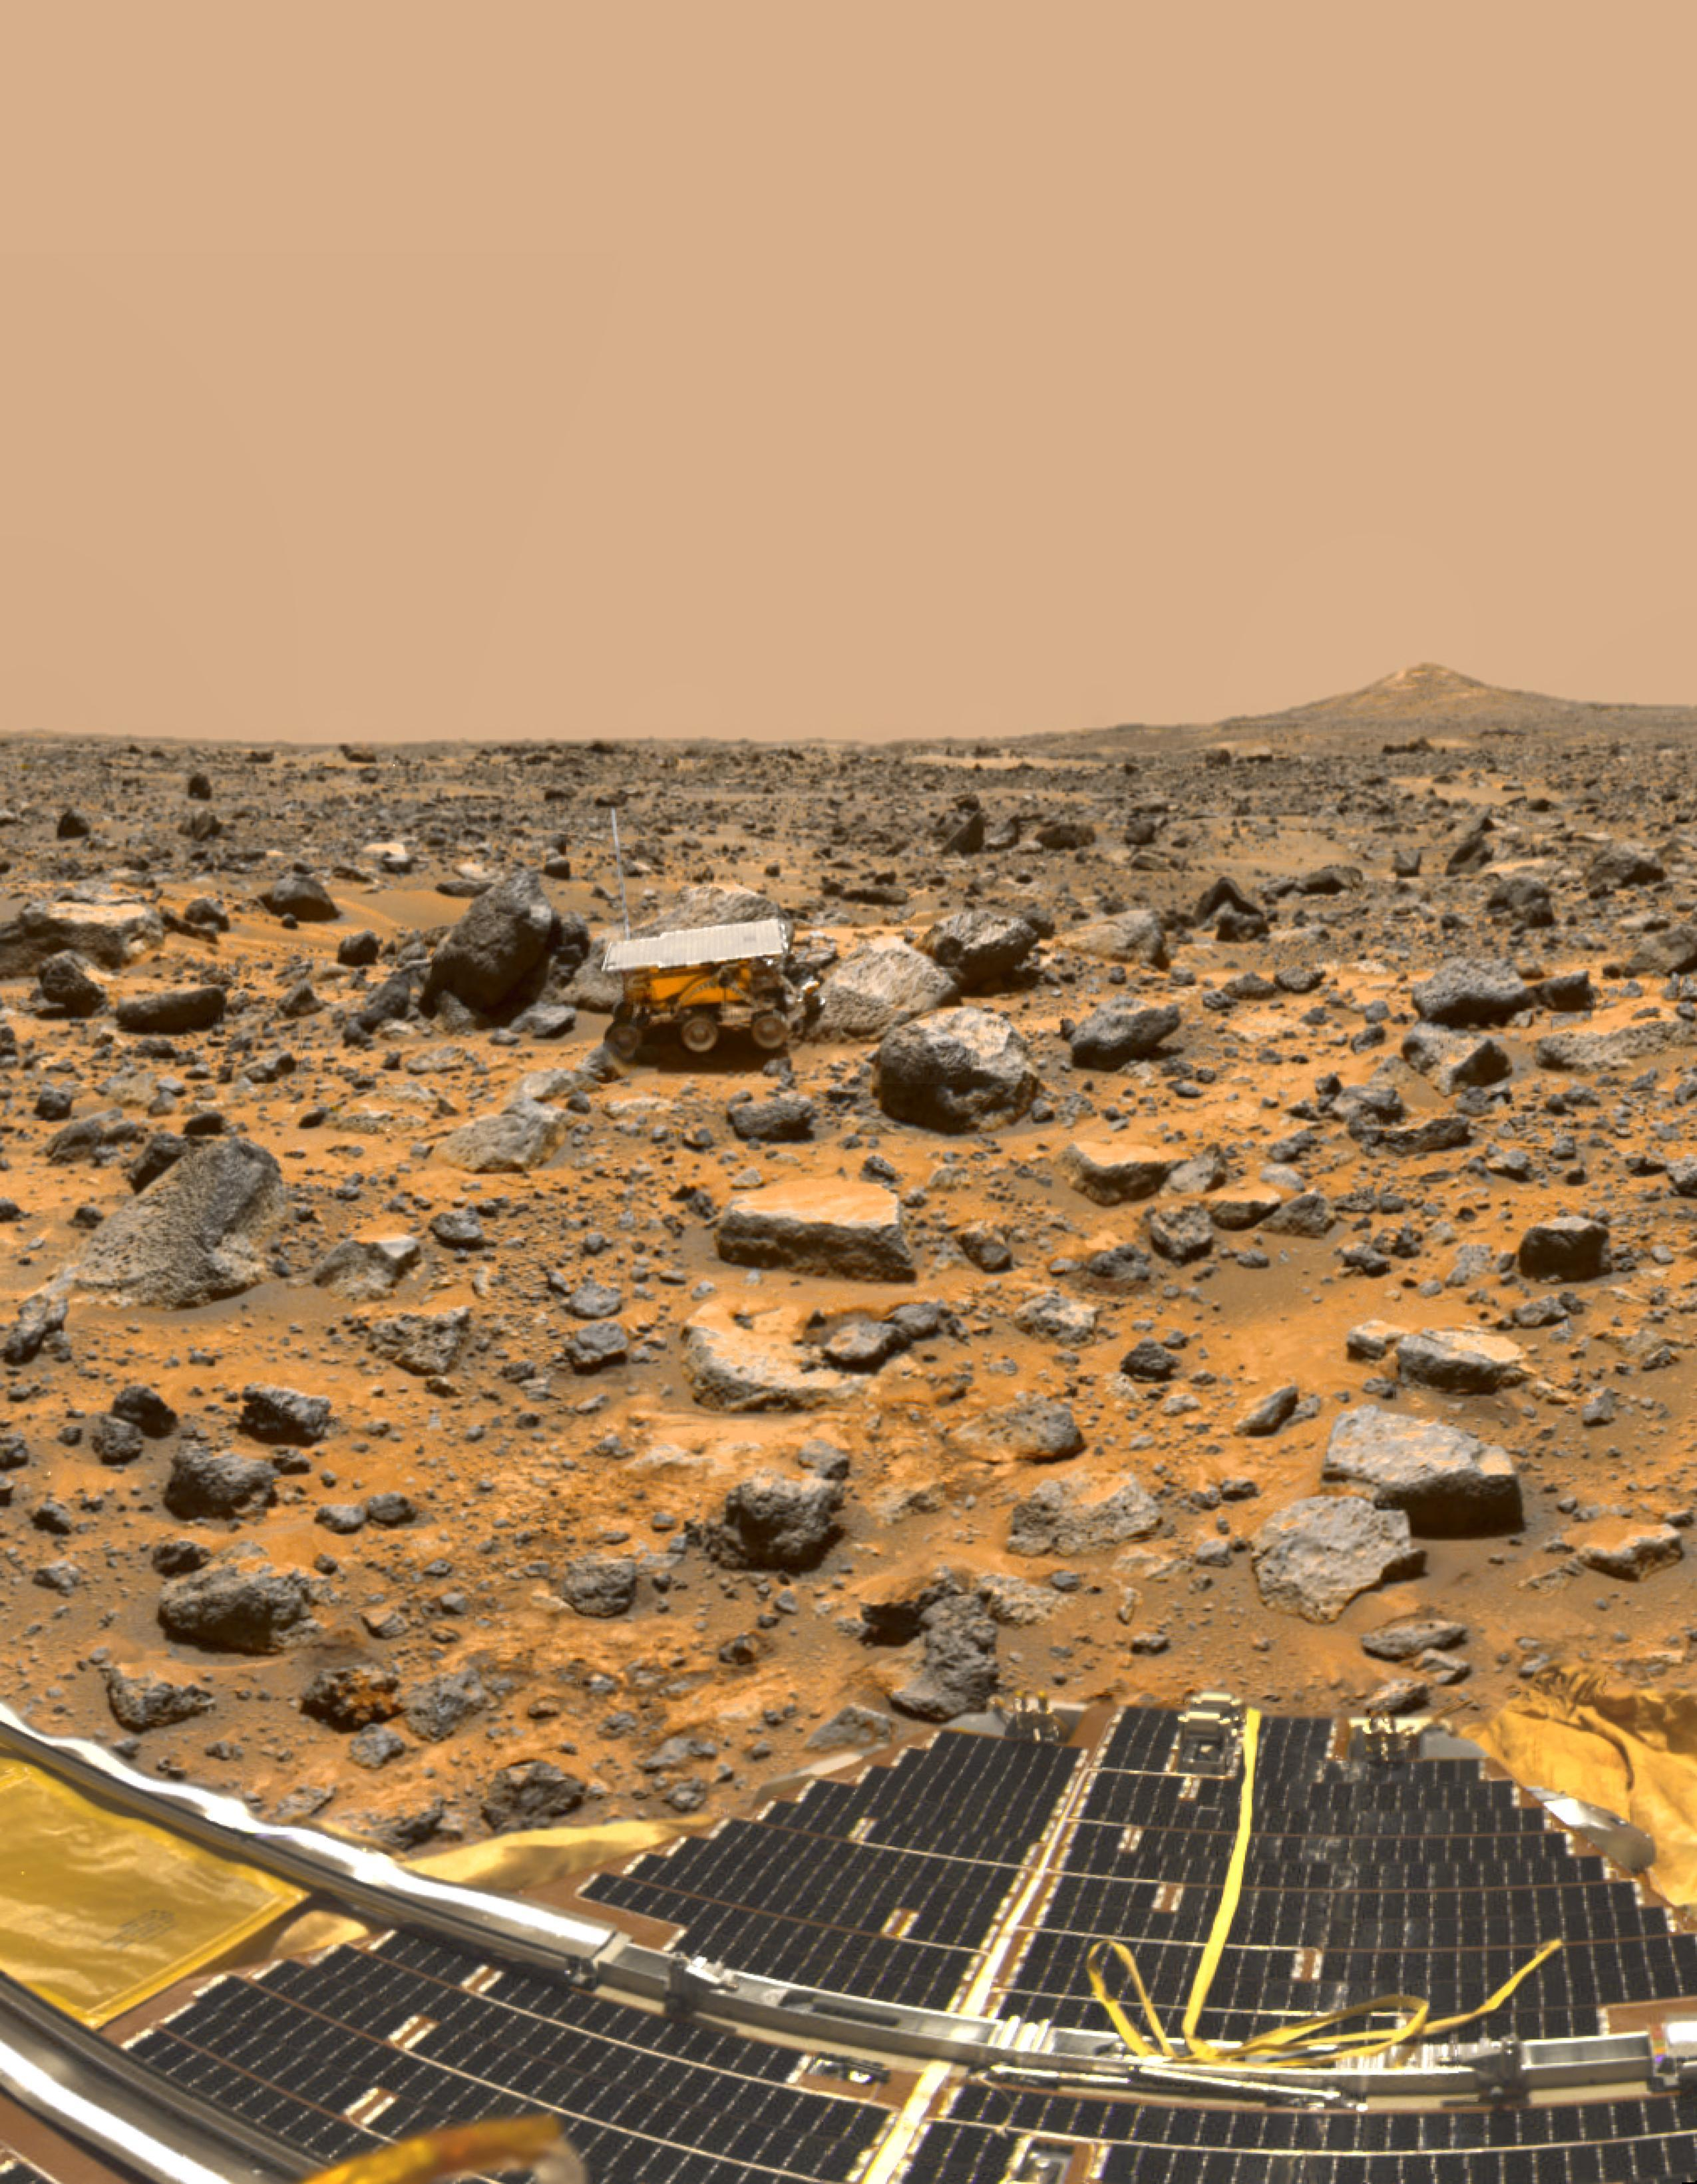 PICTURE SHOWS: Mars Pathfinder American robotic spacecraft (1997-12-12)  ...   Prepare to have your mind blown - NASA has collected together a treasure trove of more than 140,000 images, videos and audio files.  The stunning collection consolidates imagery spread across more than 60 collections into one searchable location, called the NASA Image and Video Library website.  Cover Images have chosen a gallery of the most popular images currently on the website, which include the first American astronaut to walk in space and a self-portrait of NASA's Curiosity Mars rover.  The portal allows users to search and discover content from across the agency's many missions in aeronautics, astrophysics, Earth science, human spaceflight, and more.  The library is not comprehensive, but rather provides the best of what NASA makes available from a single point of presence on the web. Additionally, it is a living website, where new and archival images, video and audio files continually will be added.  When: 12 Dec 1997